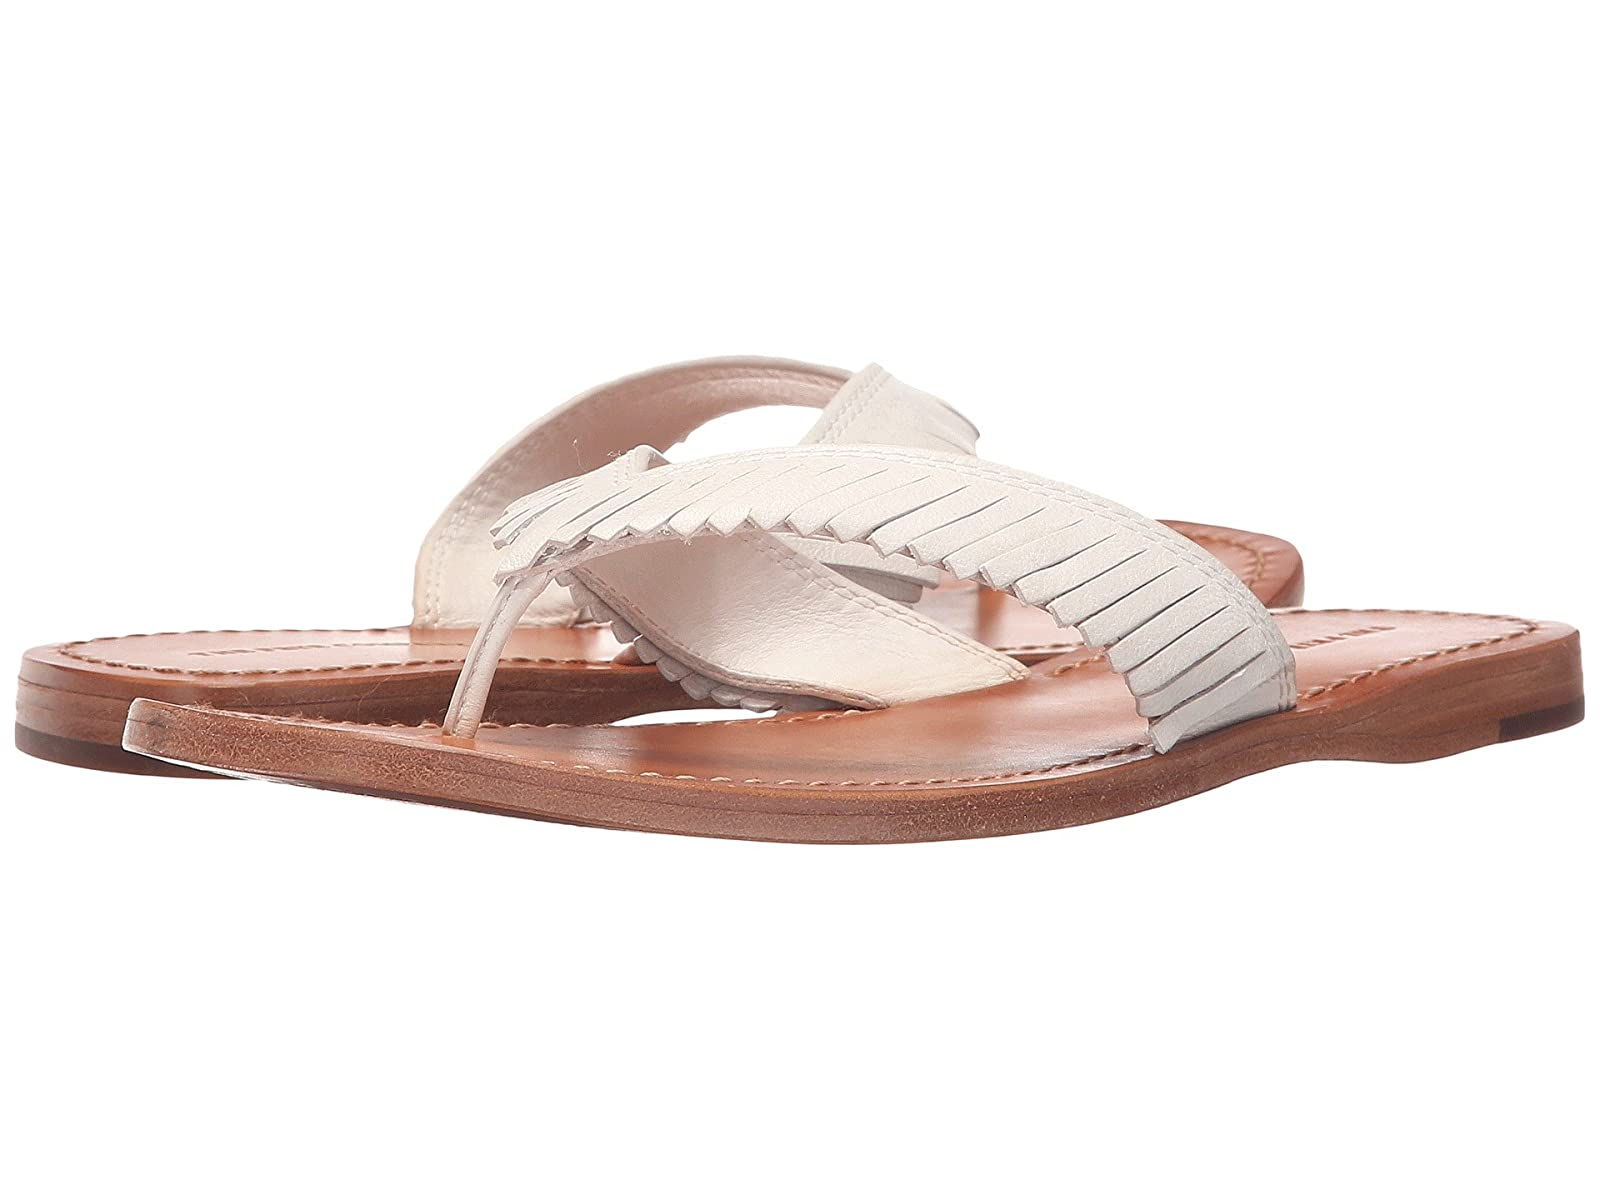 Frye Perry Feathered ThongCheap and distinctive eye-catching shoes